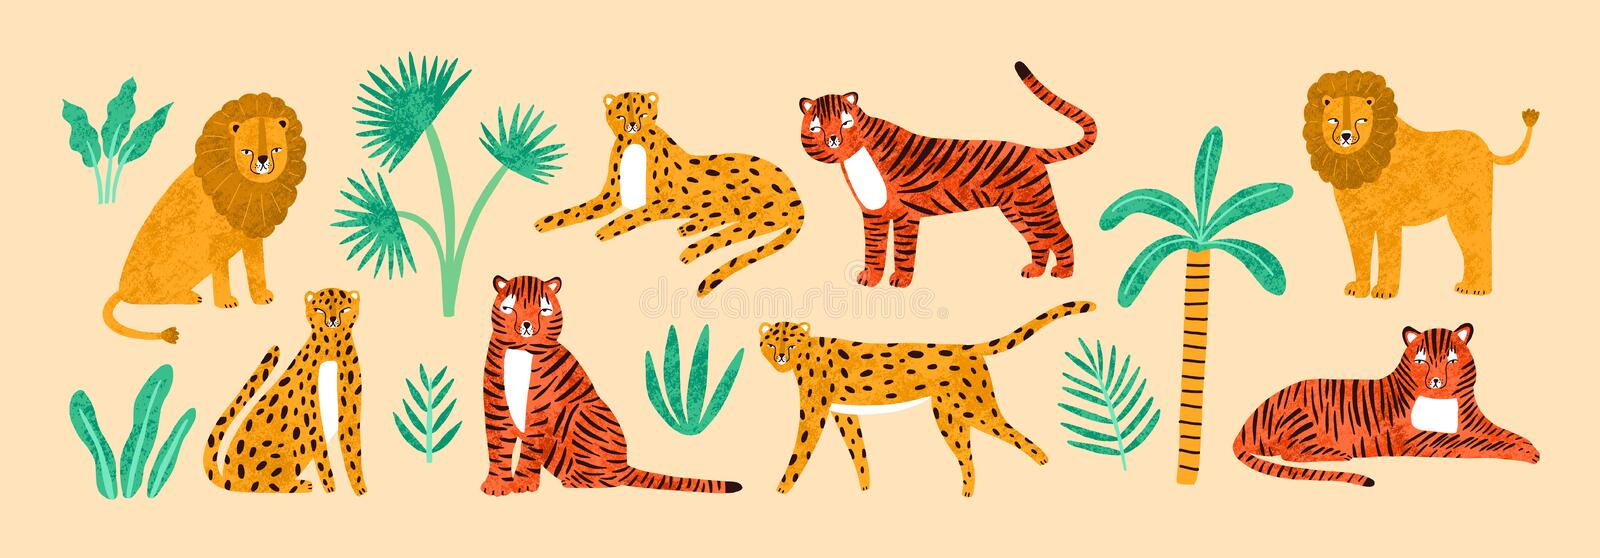 Collection of amusing lions, tigers, leopards, exotic leaves, tropical plants and palm tree isolated on light background vector illustration